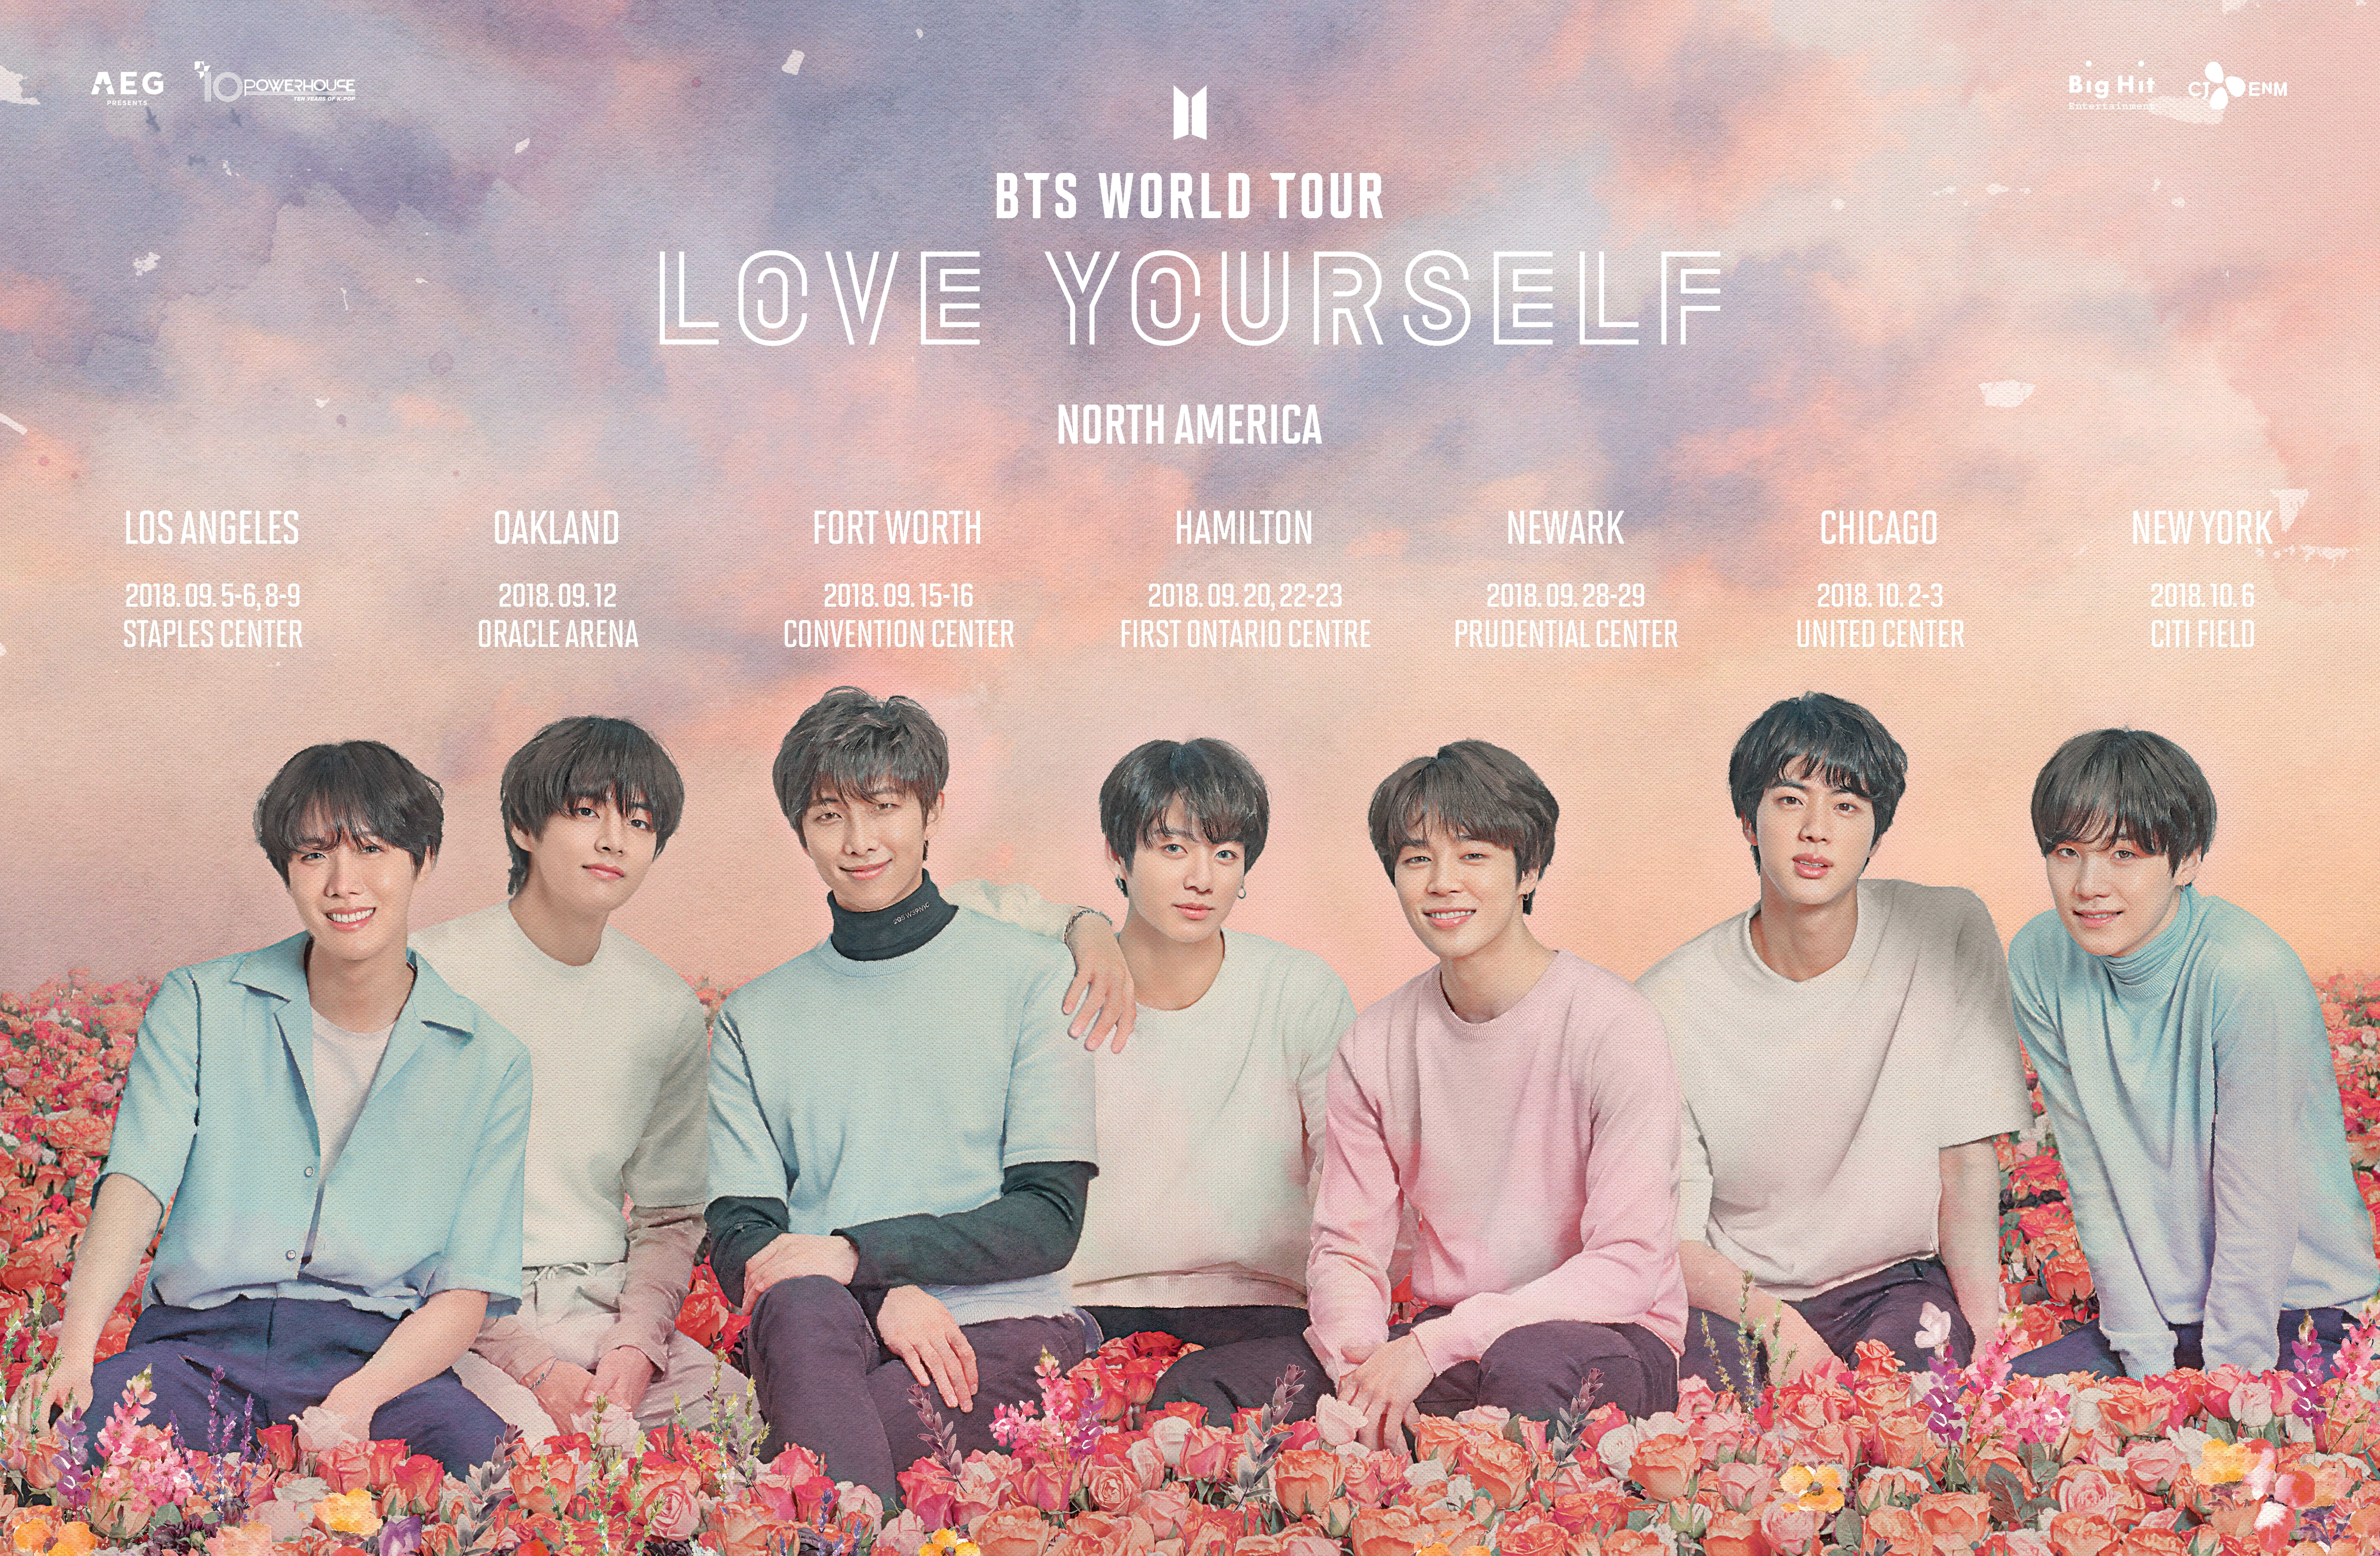 Bts Confirms Highly Anticipated Details Of Their First